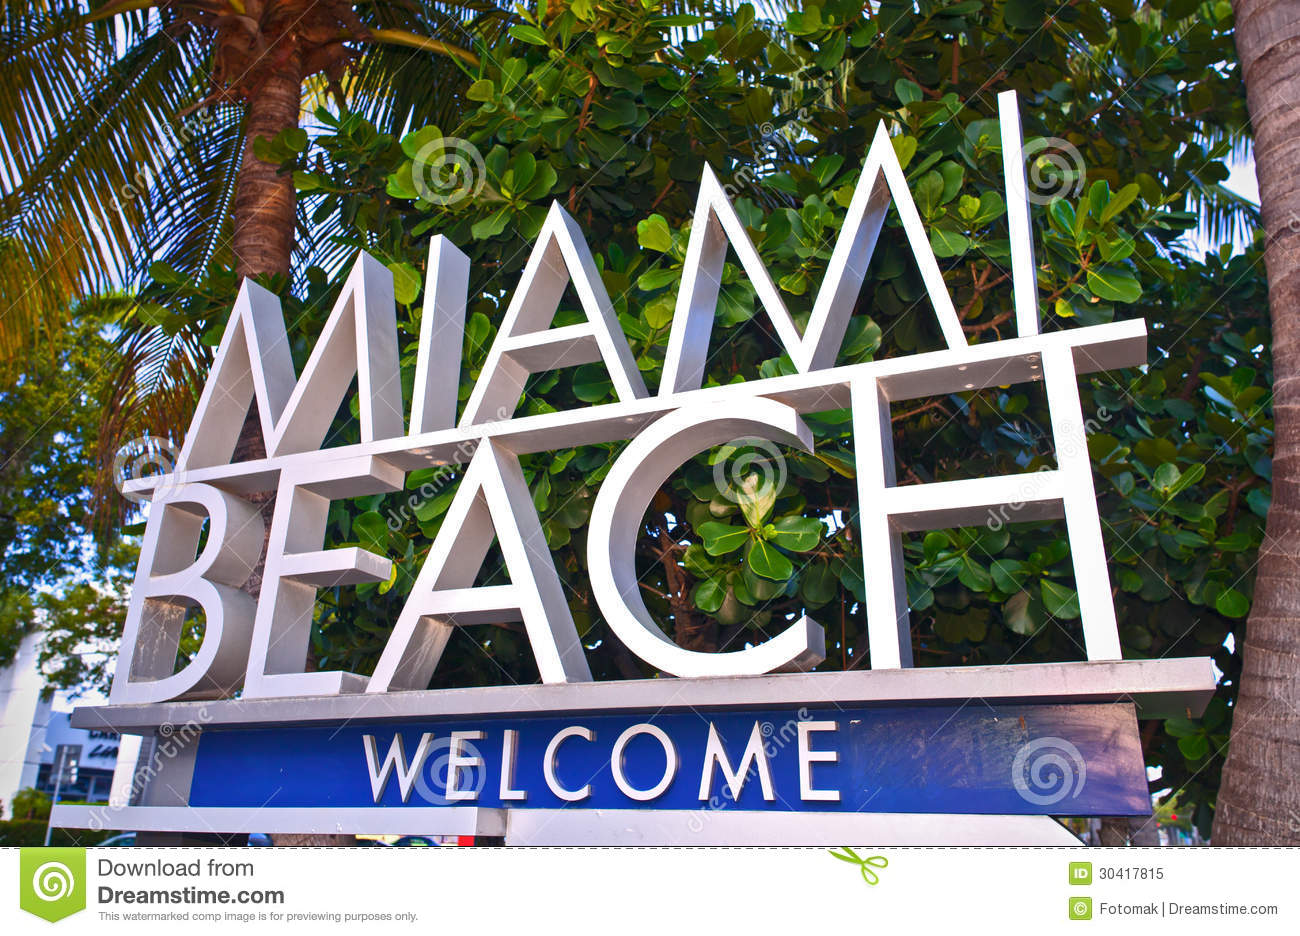 City of Miami Beach Florida welcome sign with palm trees